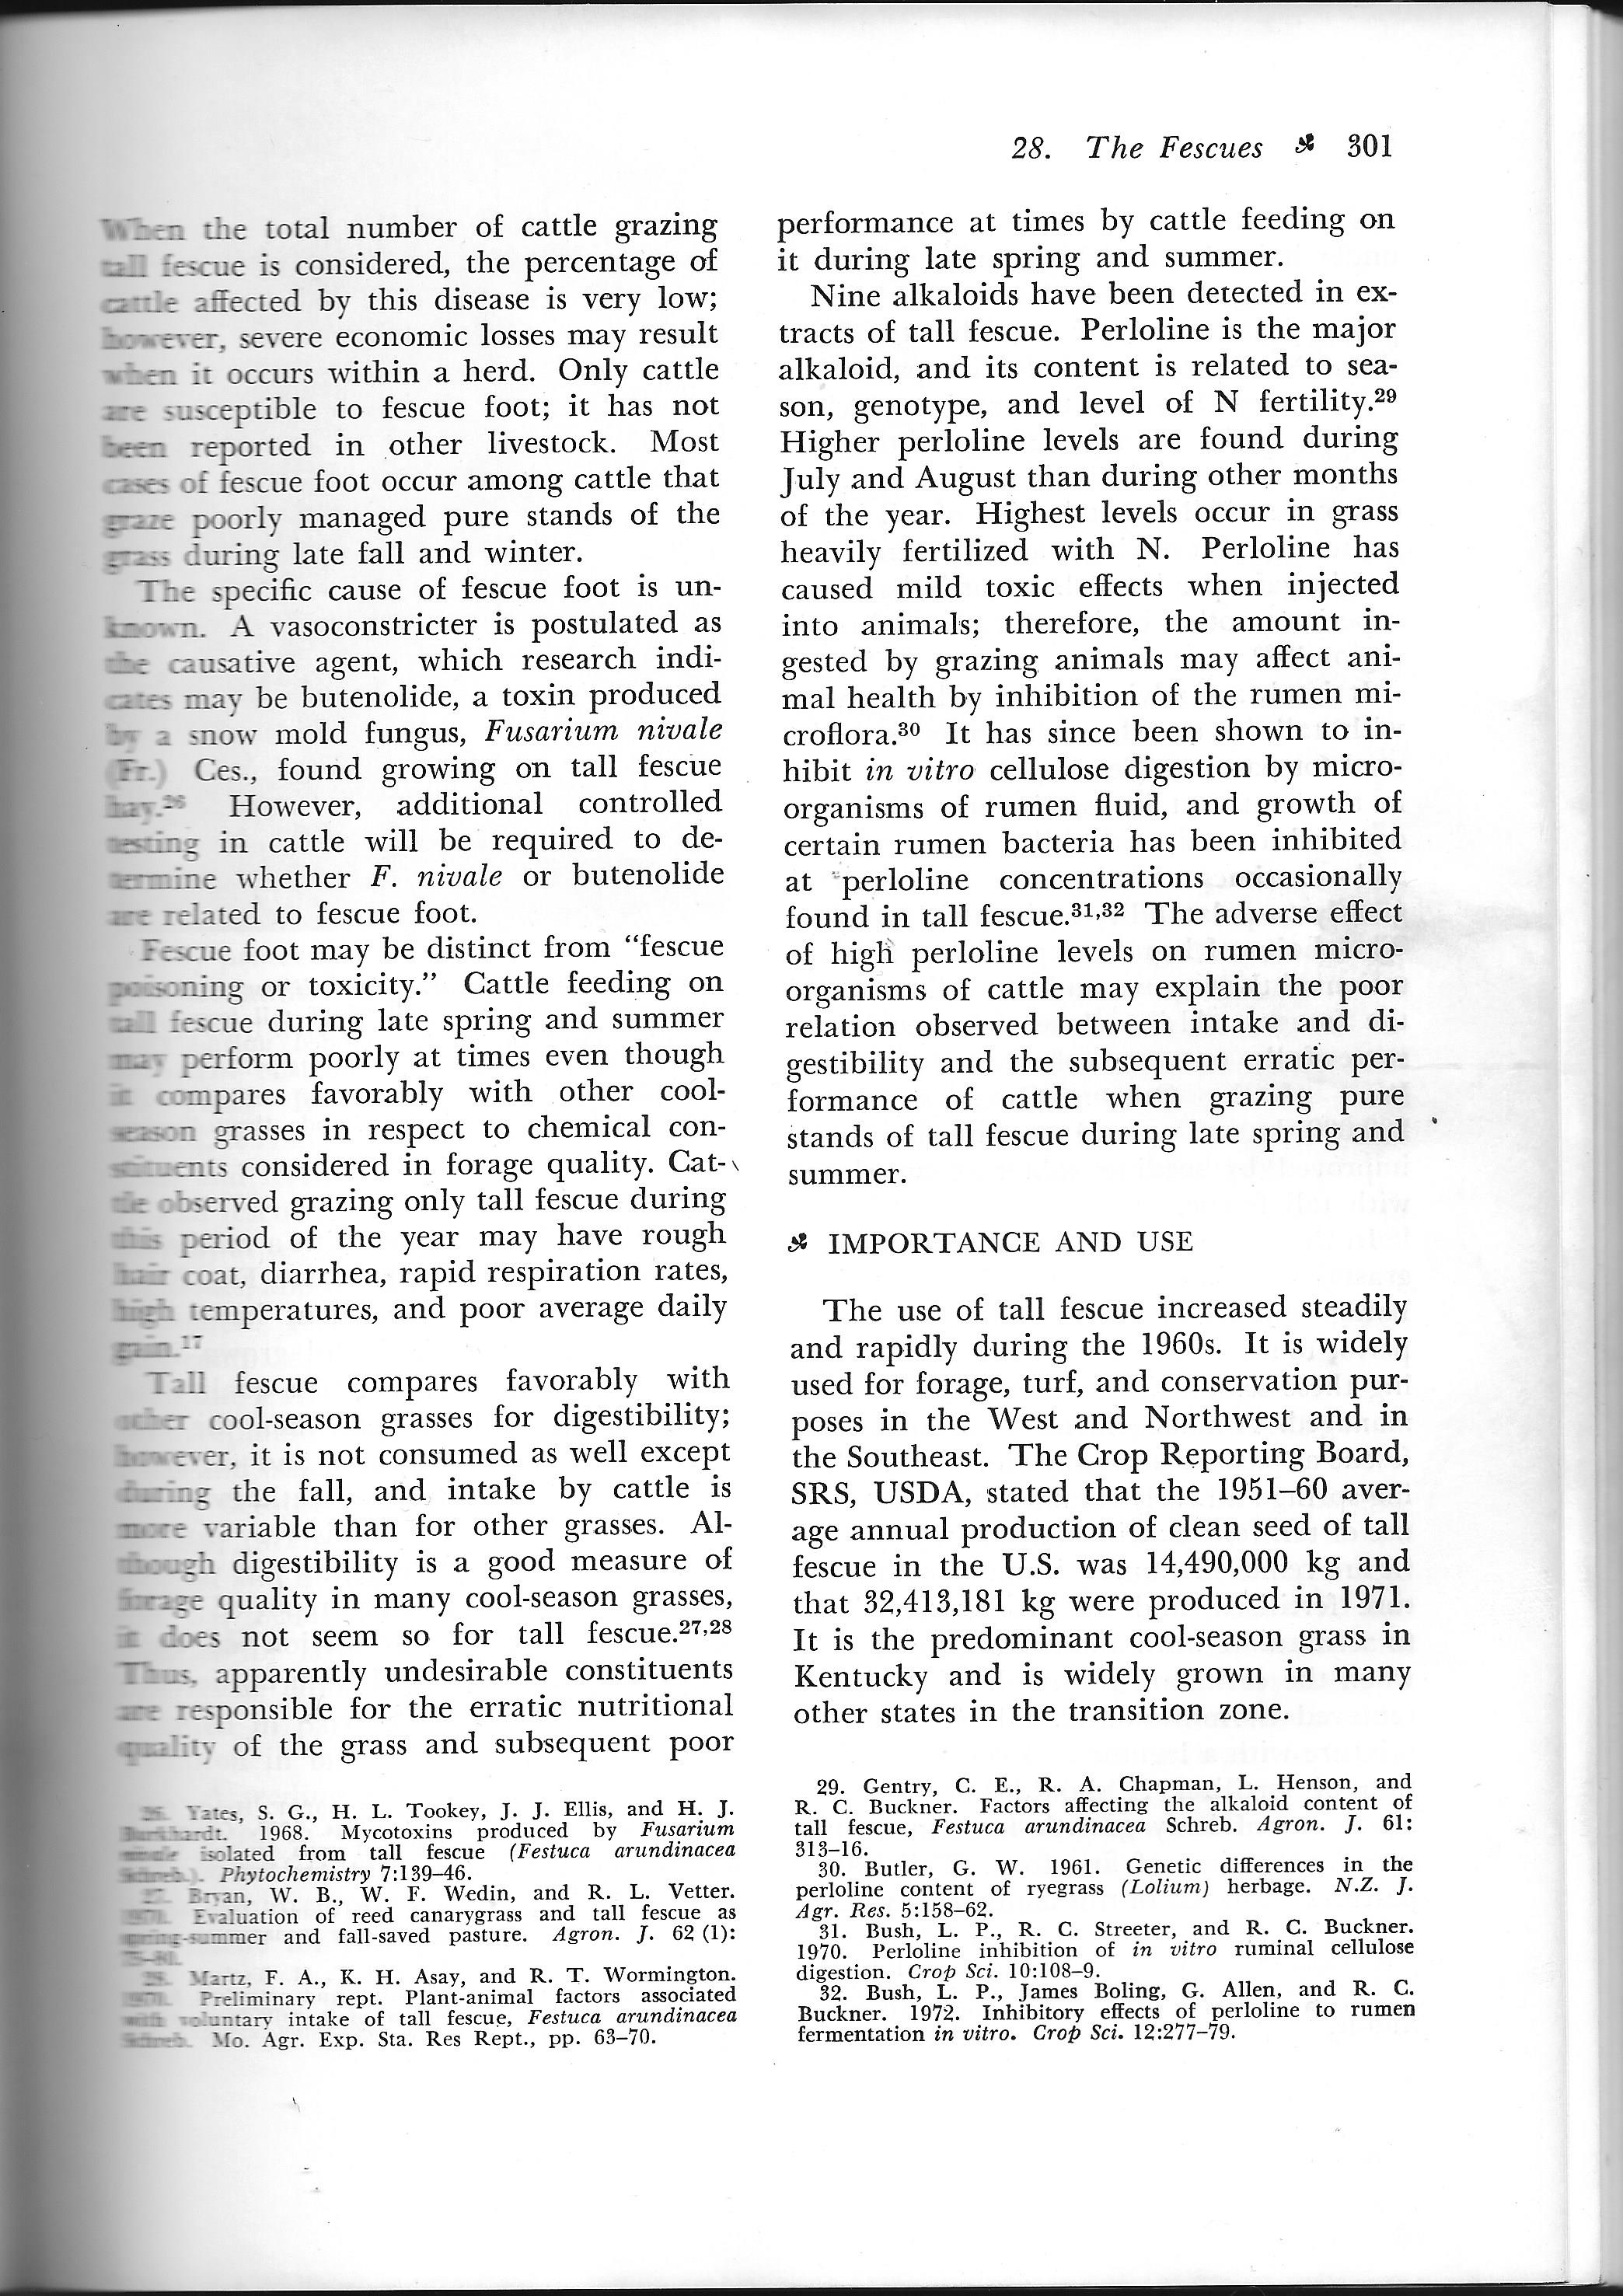 forages-fescue-toxicity-page-301